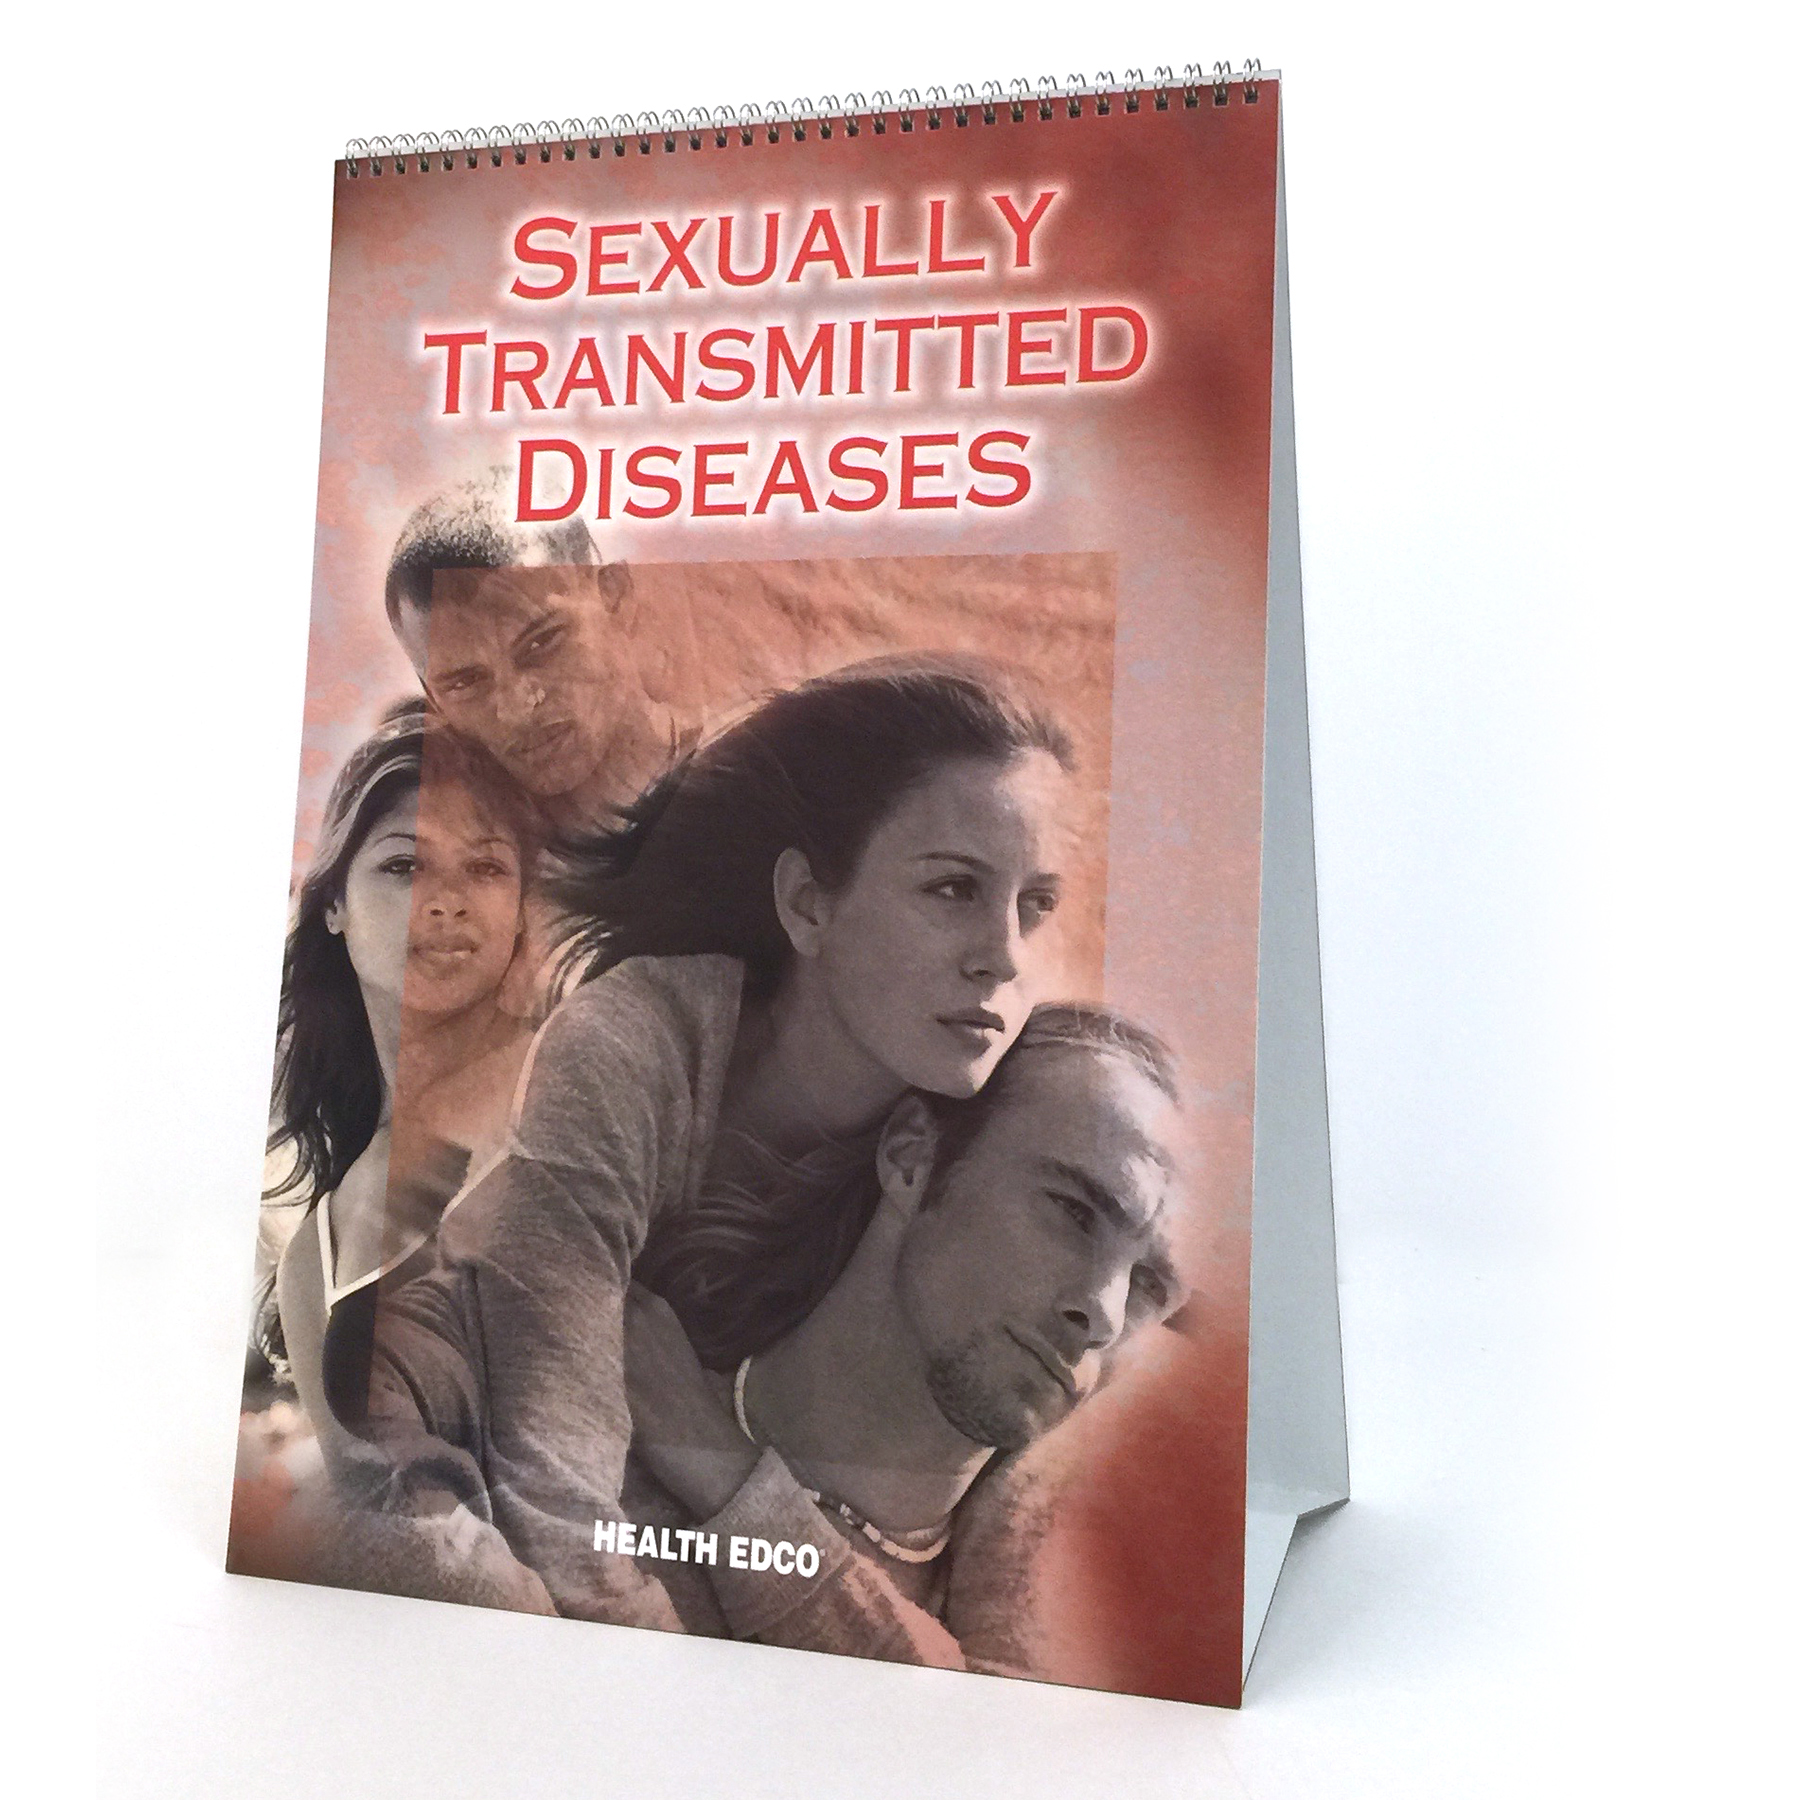 Sexually transmitted disease movie